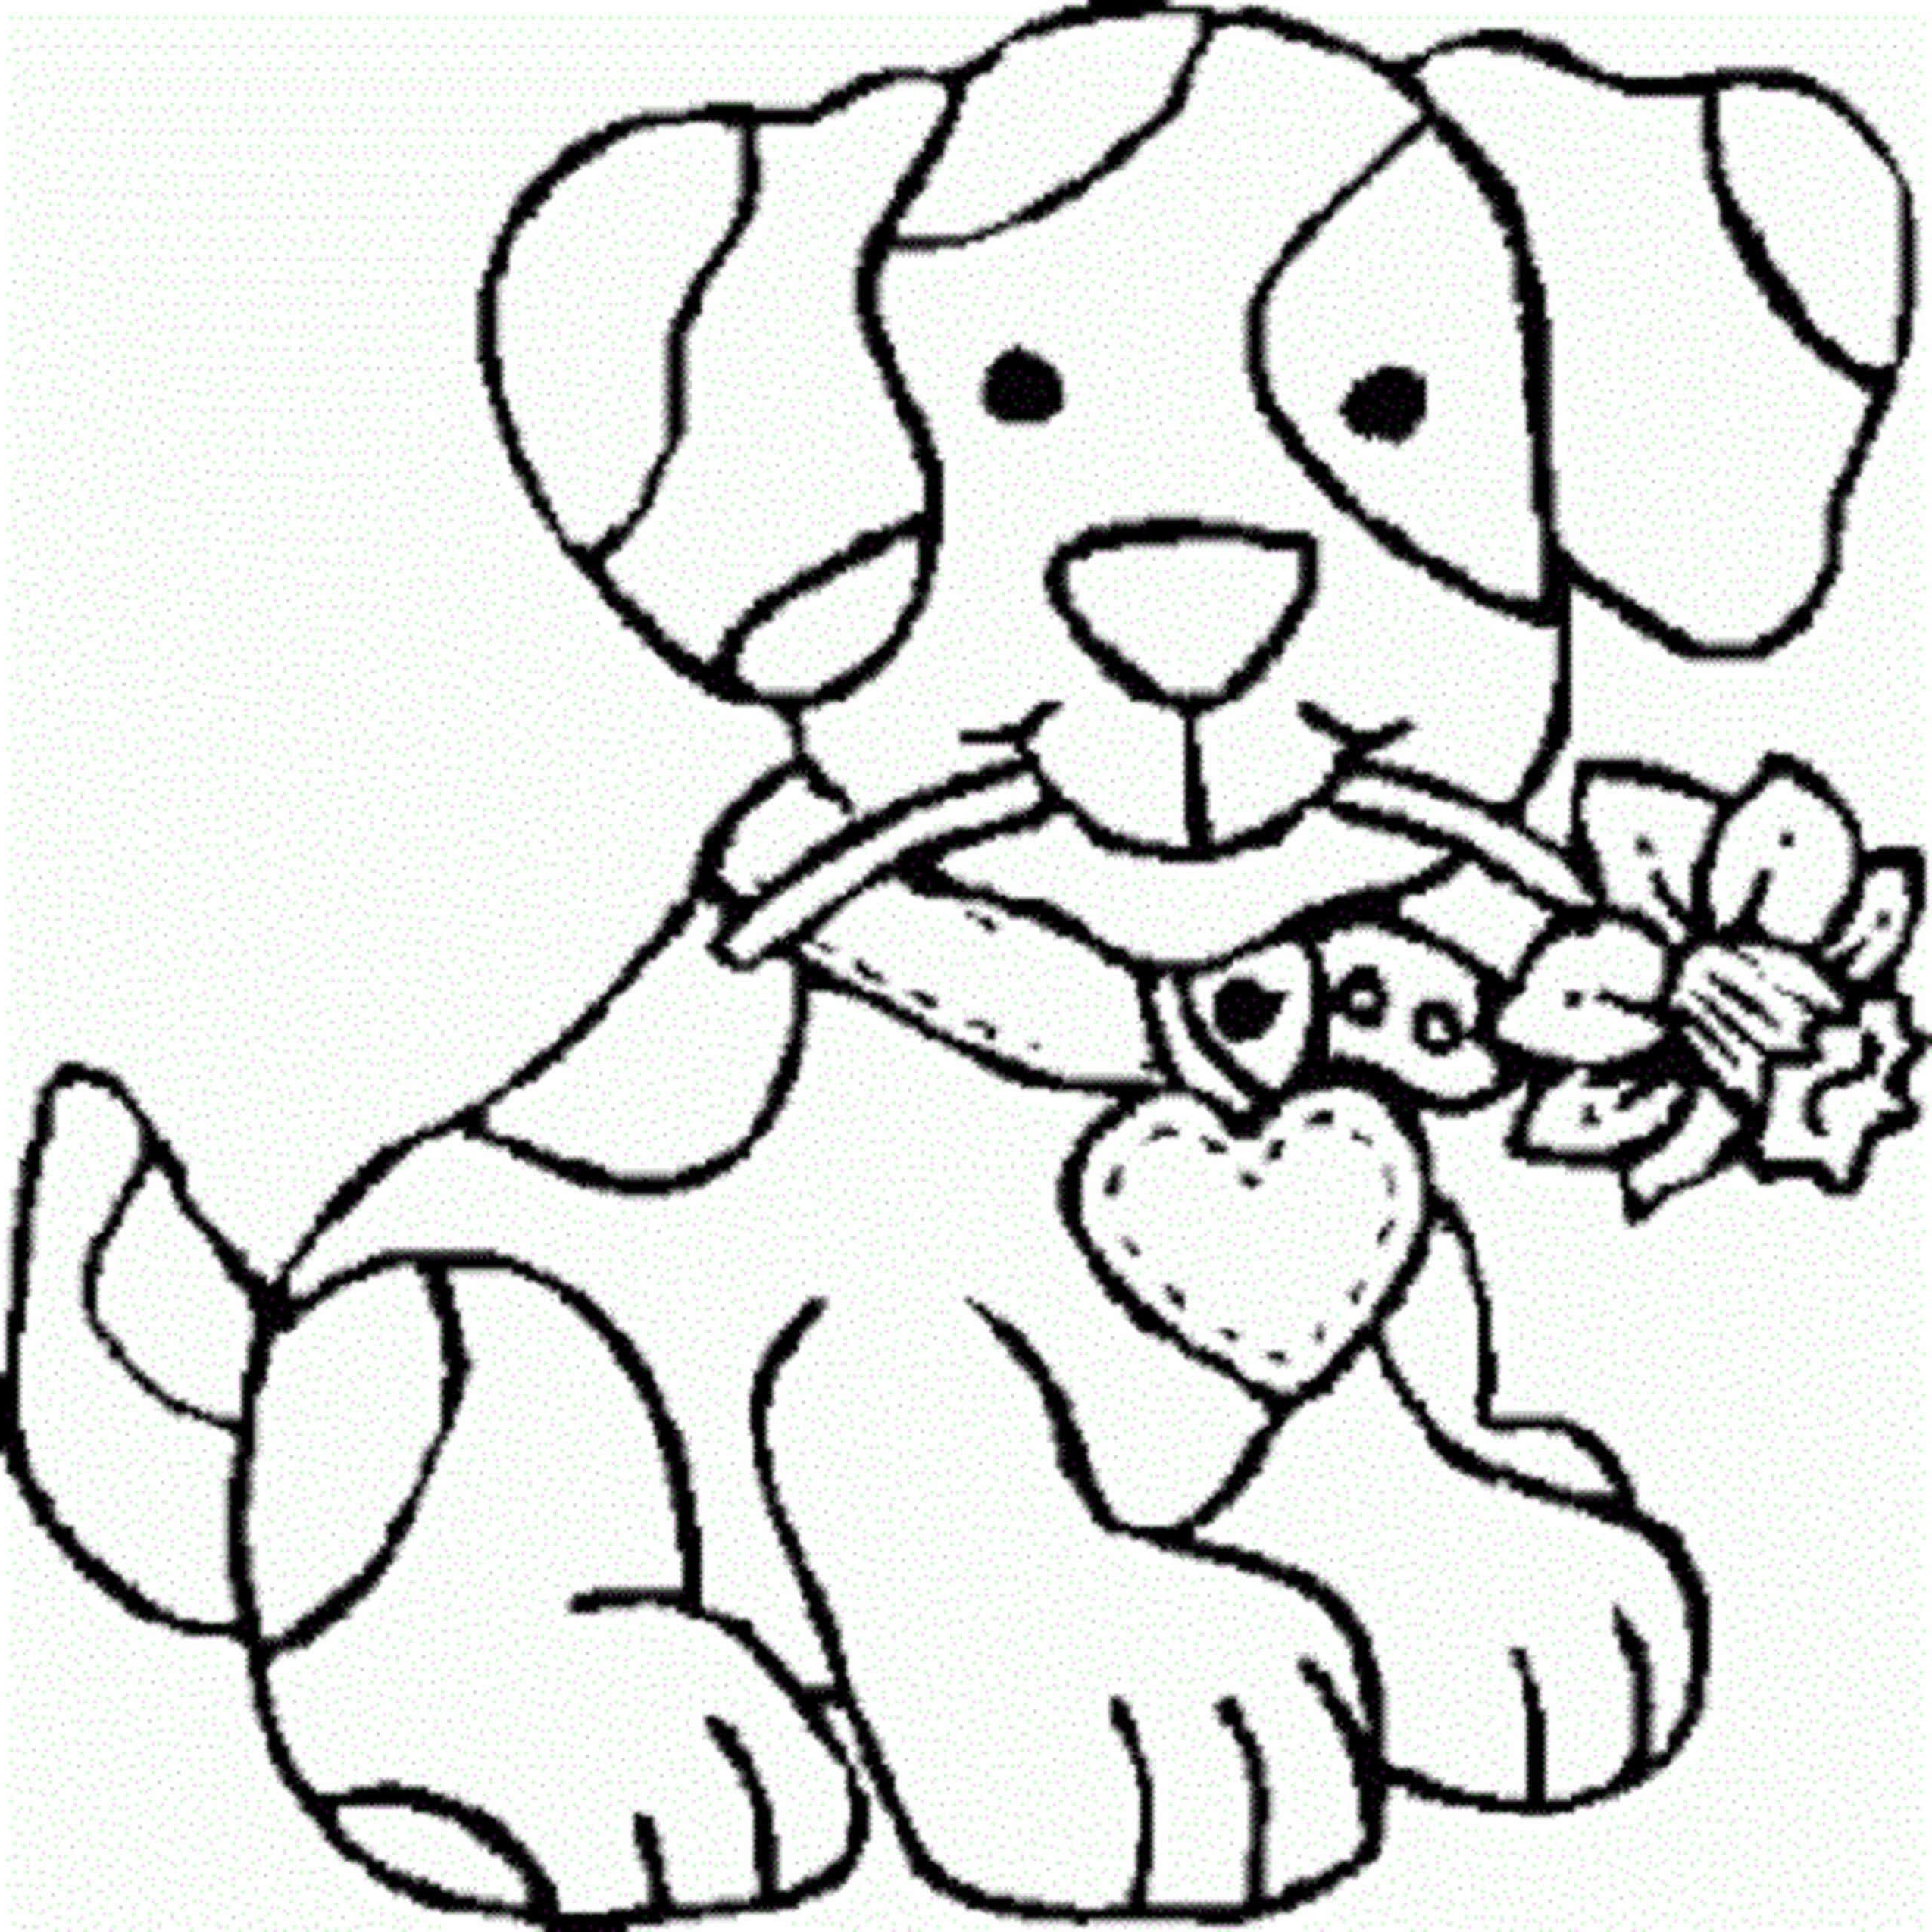 Printable Coloring Pages For Girls Printable Coloring Pages For Girls F5to Cool Free Printable Coloring